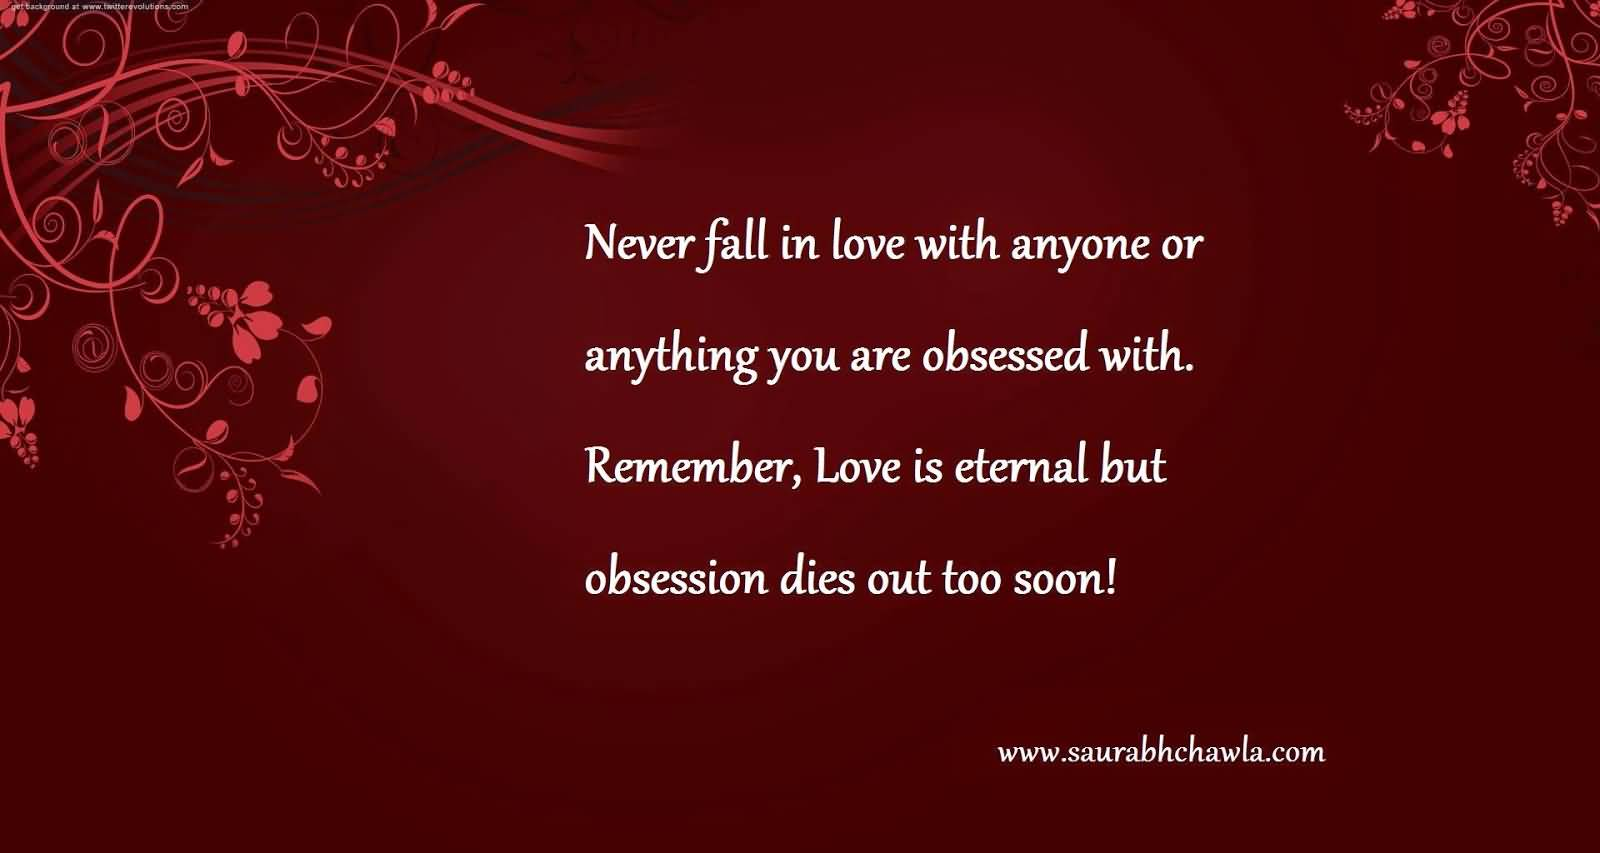 Love Is Eternal Quotes Love Obsession Quotes 02  Quotesbae